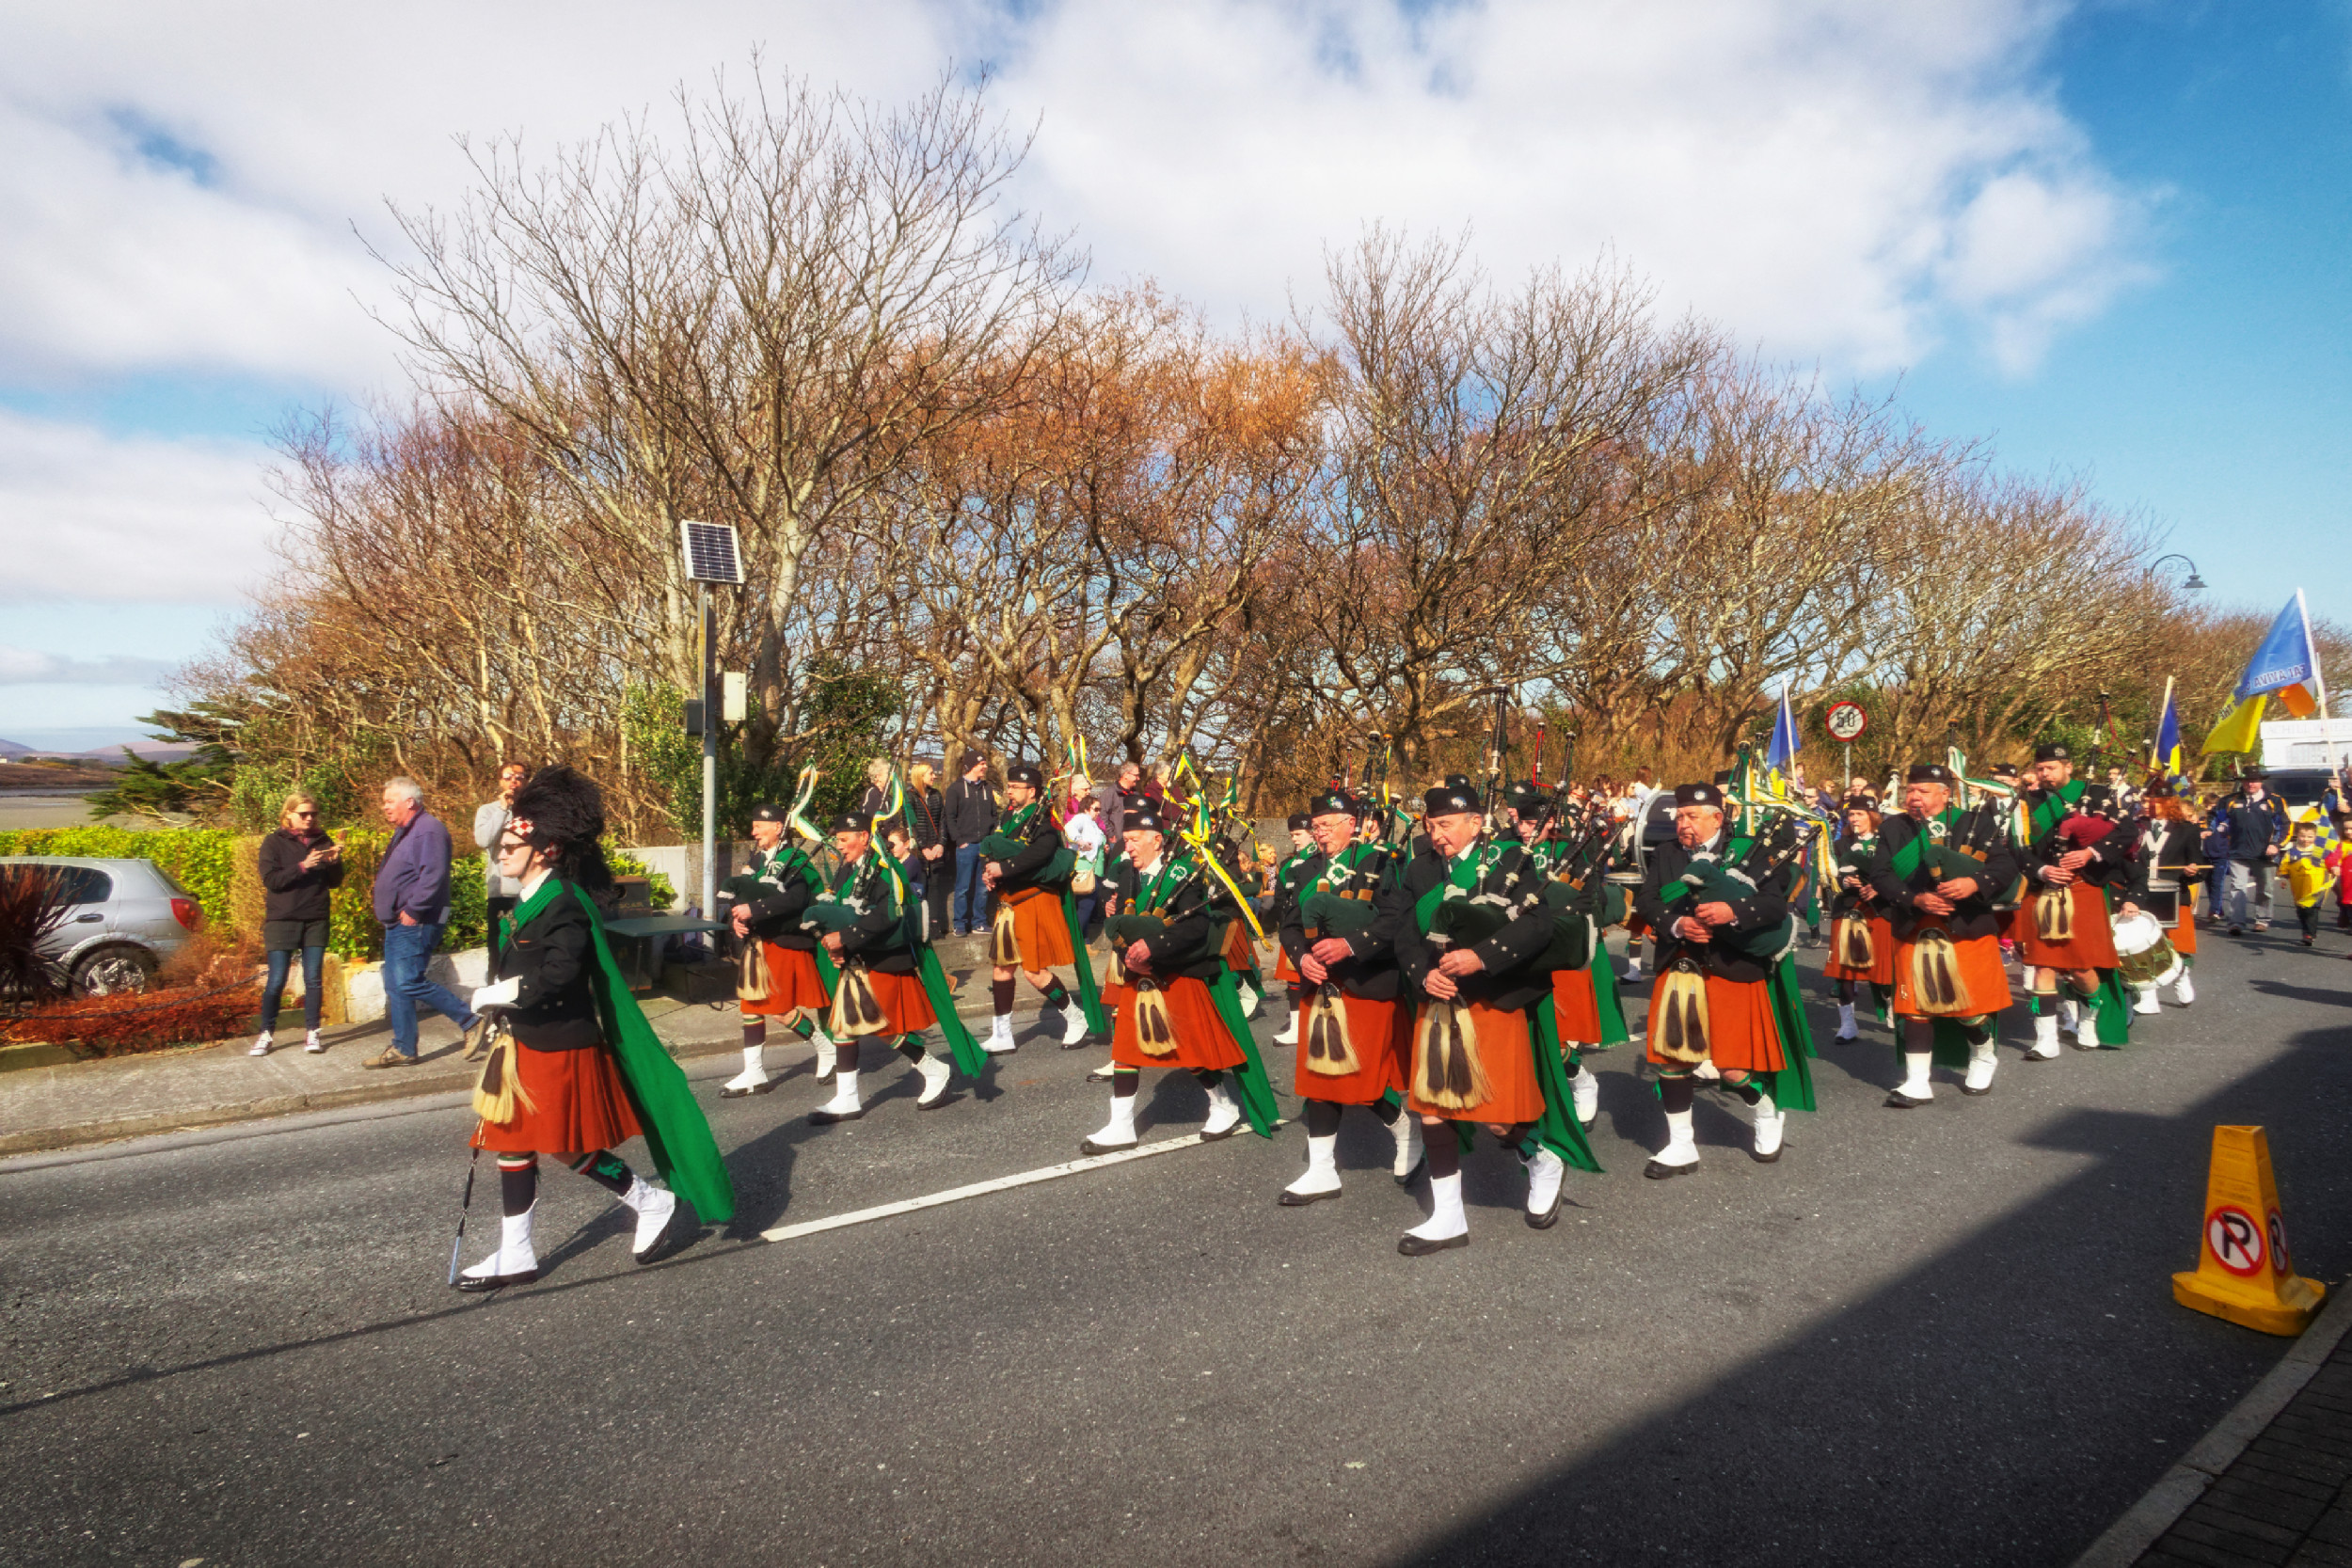 20160320130540-ie-achill-sound_parade-_DxO_13in_DxO96